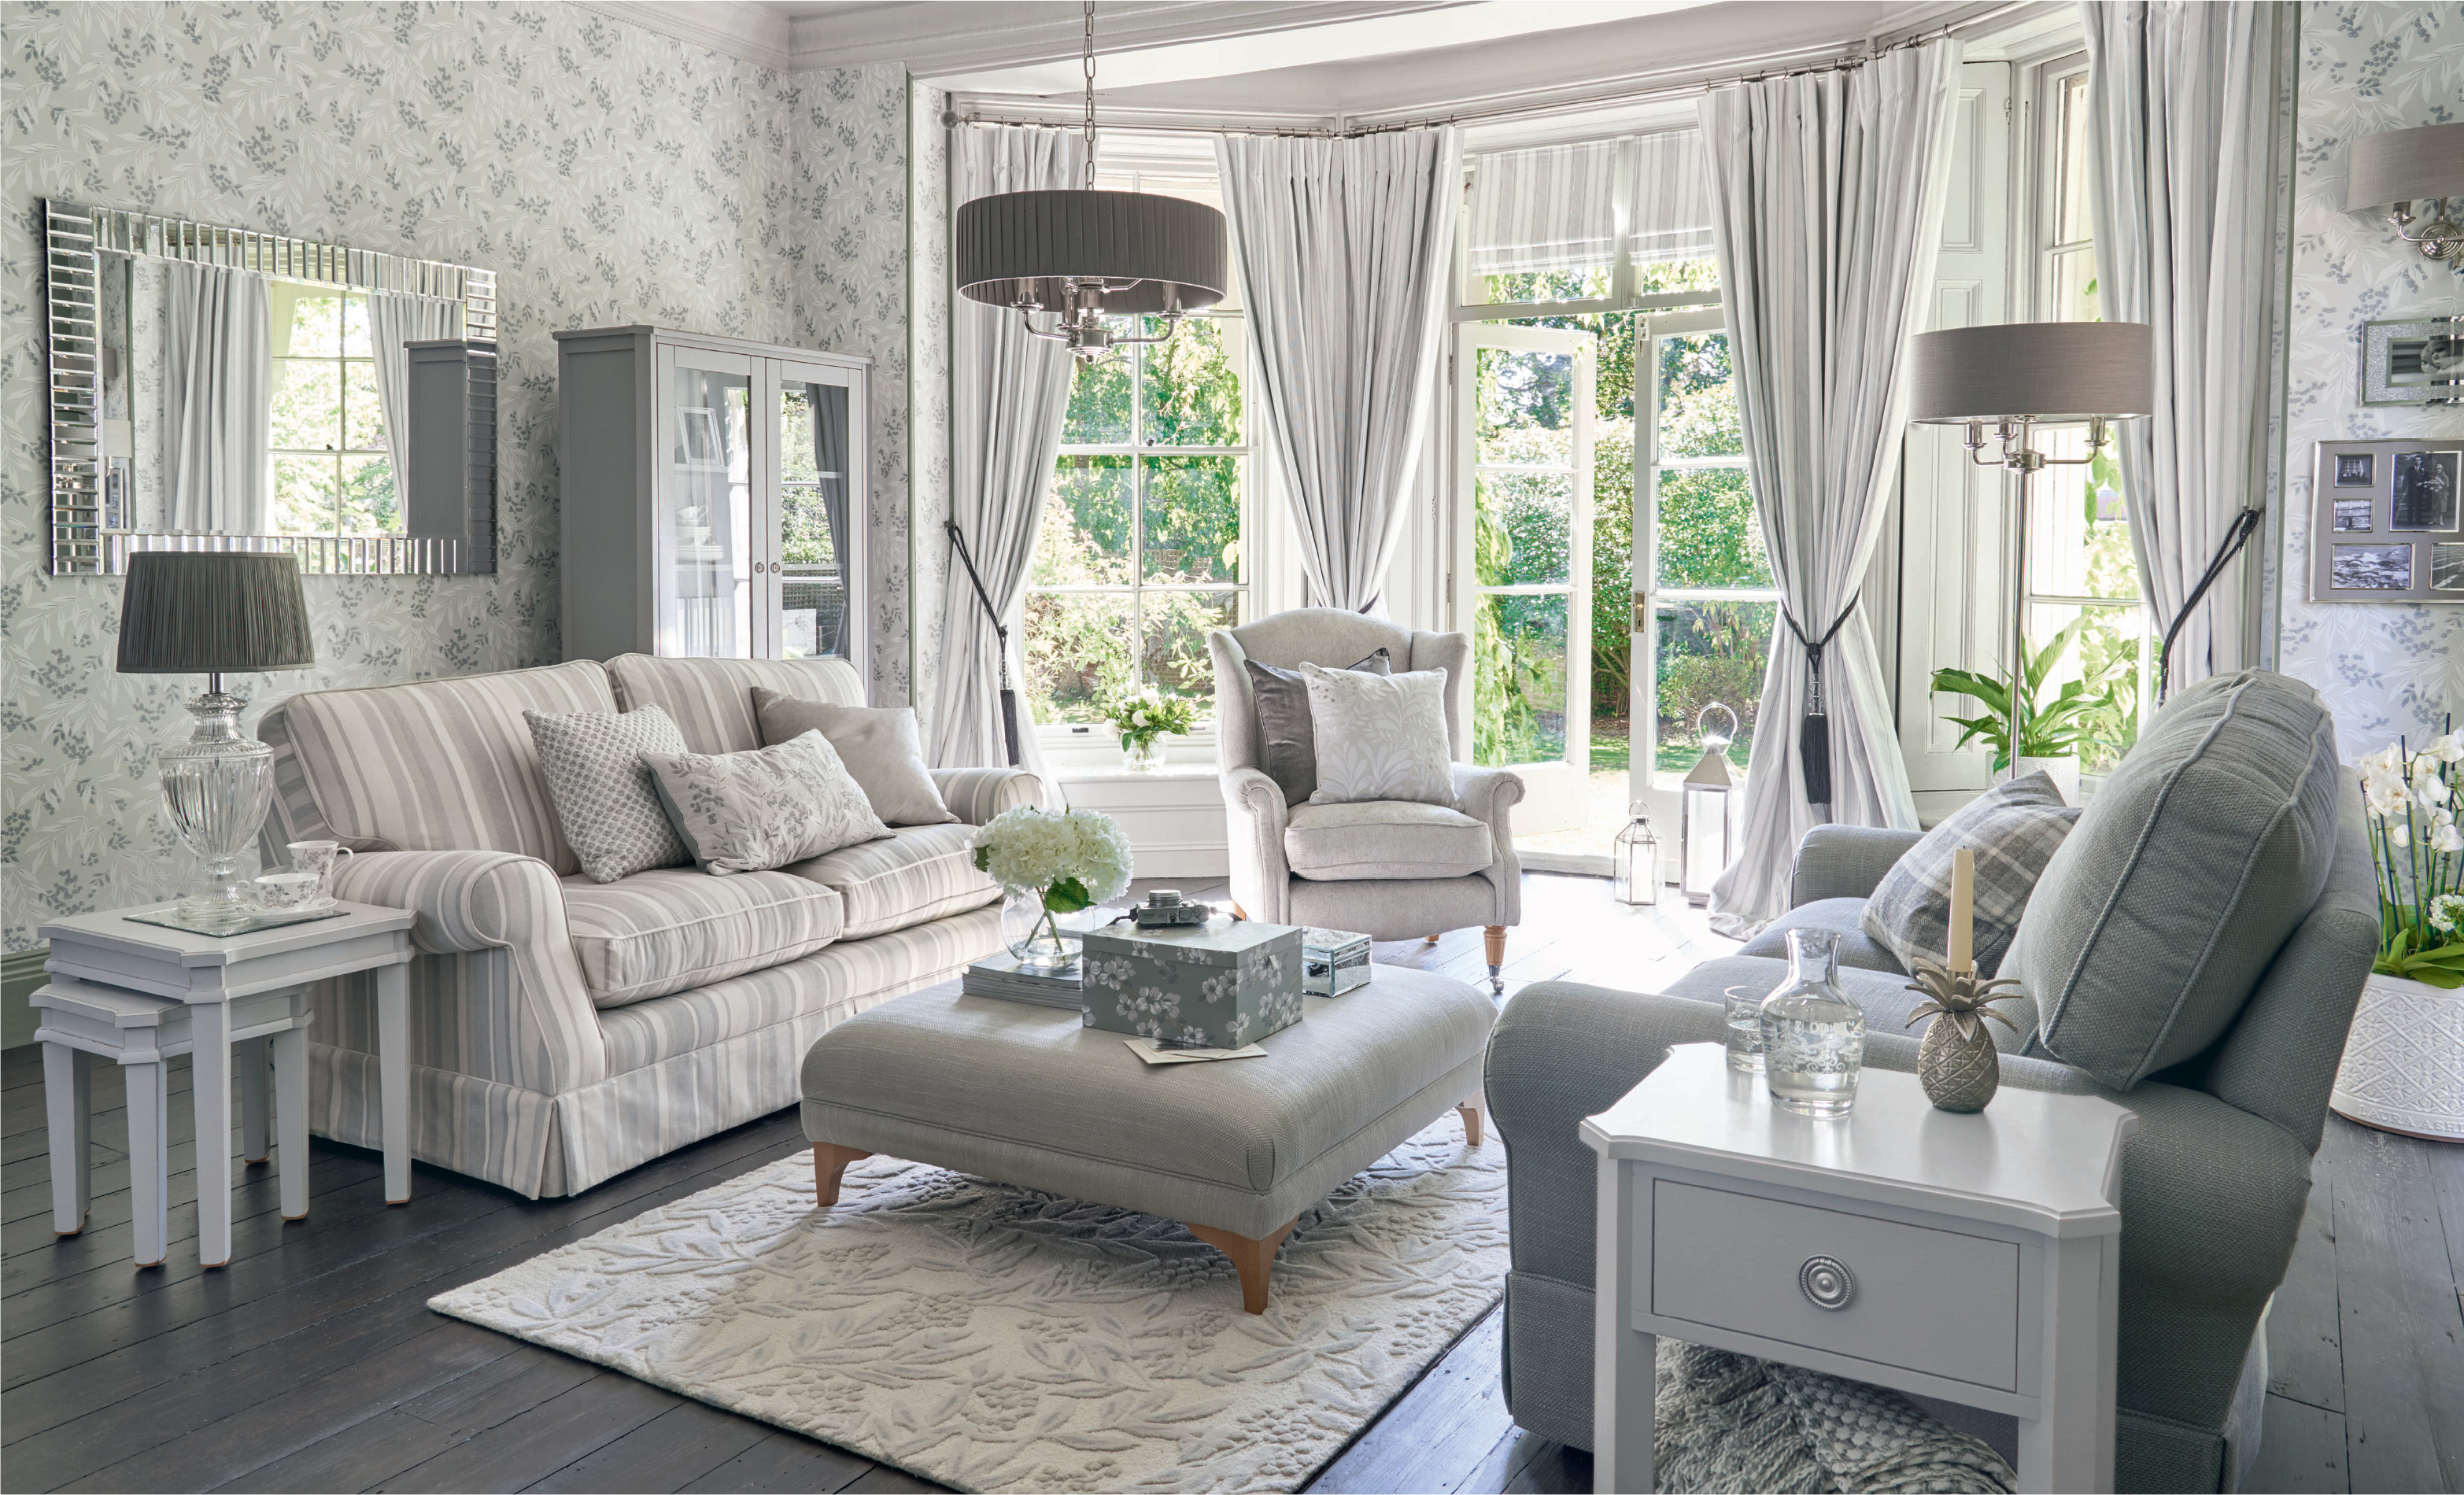 Why We're All in Love with Grey Interiors | Laura Ashley Blog